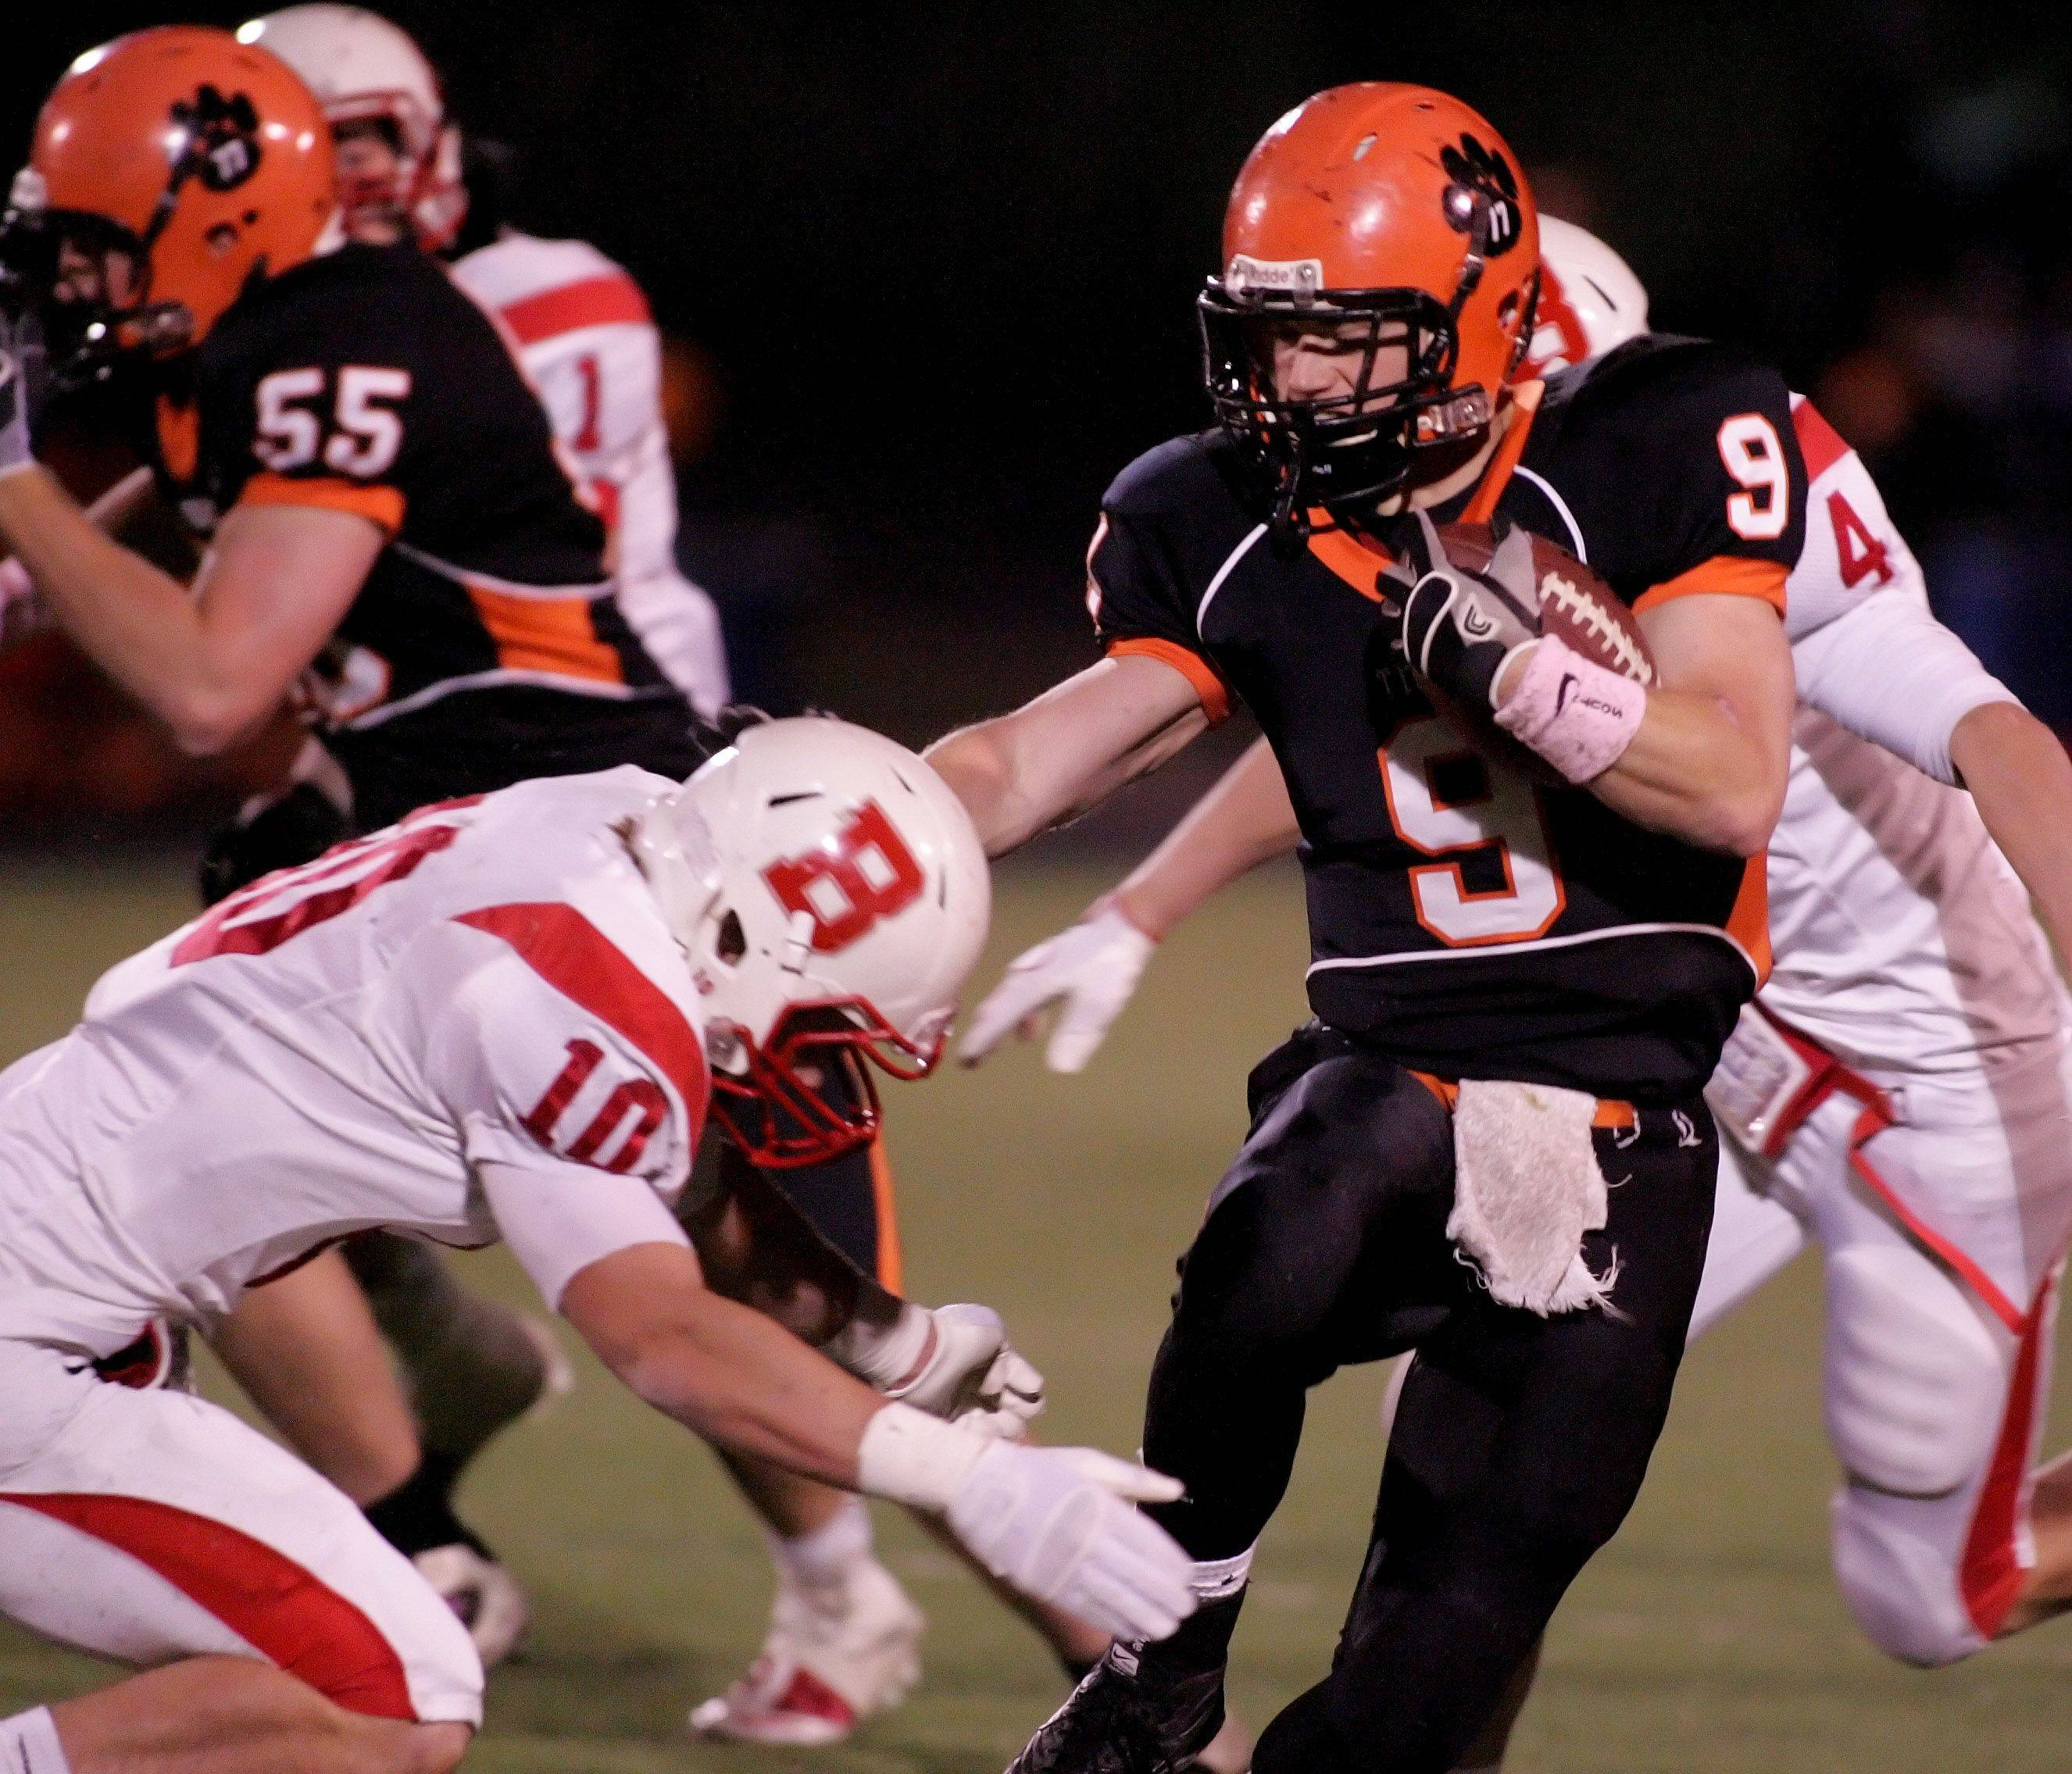 Nelligan Connor, left of Benet, moves in to tackle Matt Rogers of Wheaton Warrenville South, right, during playoff football Friday in Wheaton.